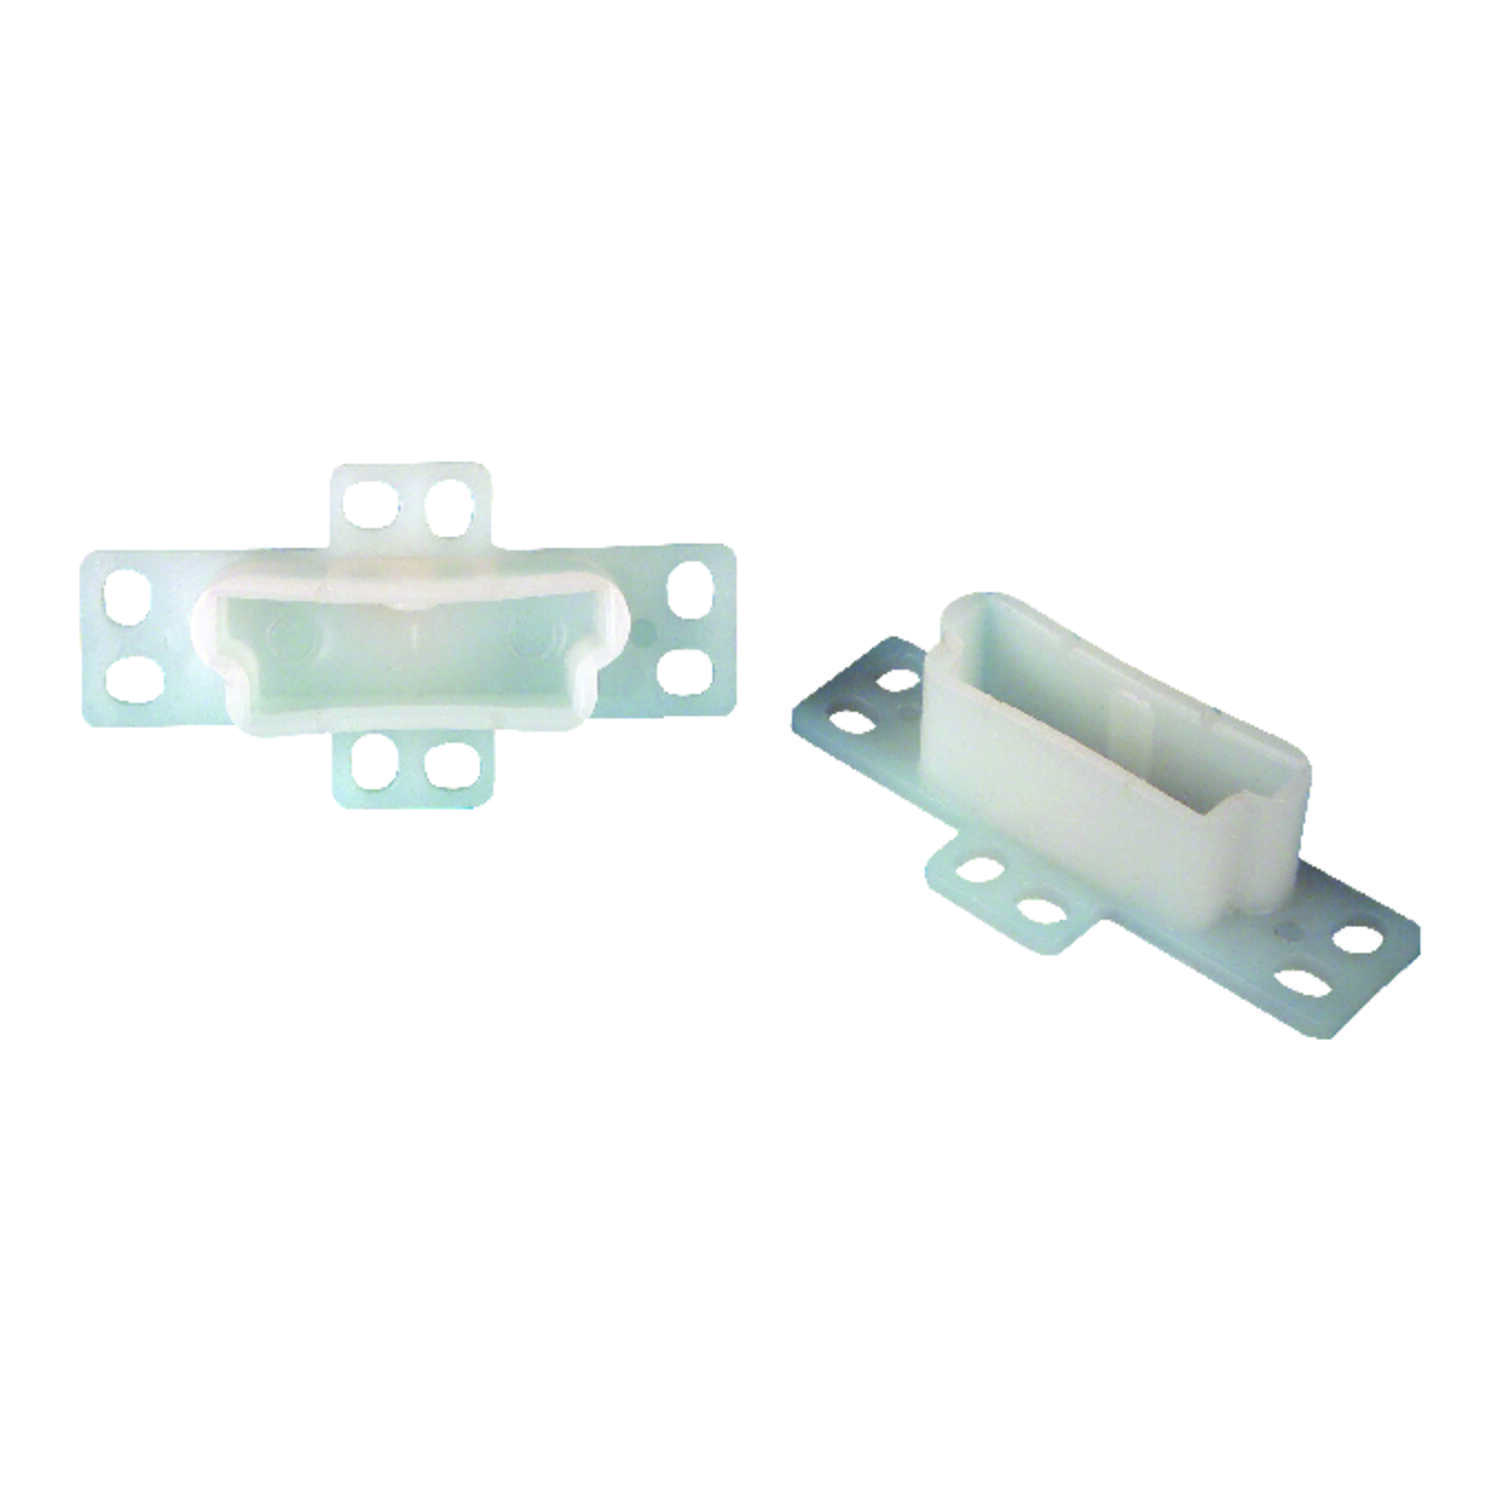 US Hardware  2-3/4 in. L Plastic  Rear Mounting Bracket  Drawer  2 pk